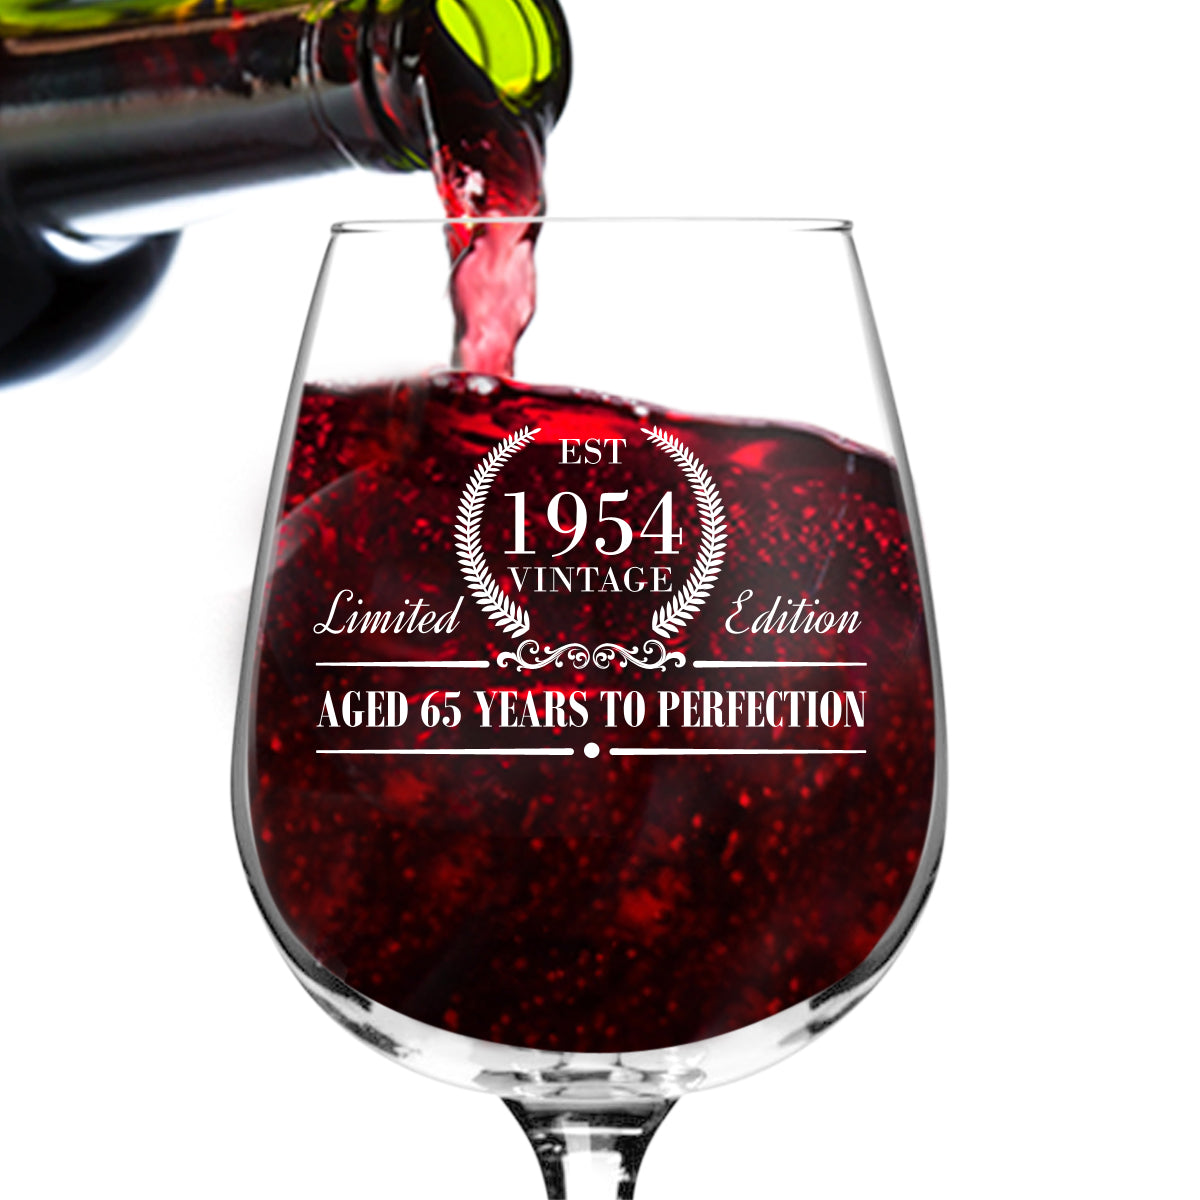 1954 Vintage Edition Birthday Wine Glass for Men and Women (65th Anniversary) 12 oz, Elegant Happy Birthday Wine Glasses for Red or White Wine | Classic Birthday Gift, Reunion Gift for Him or Her